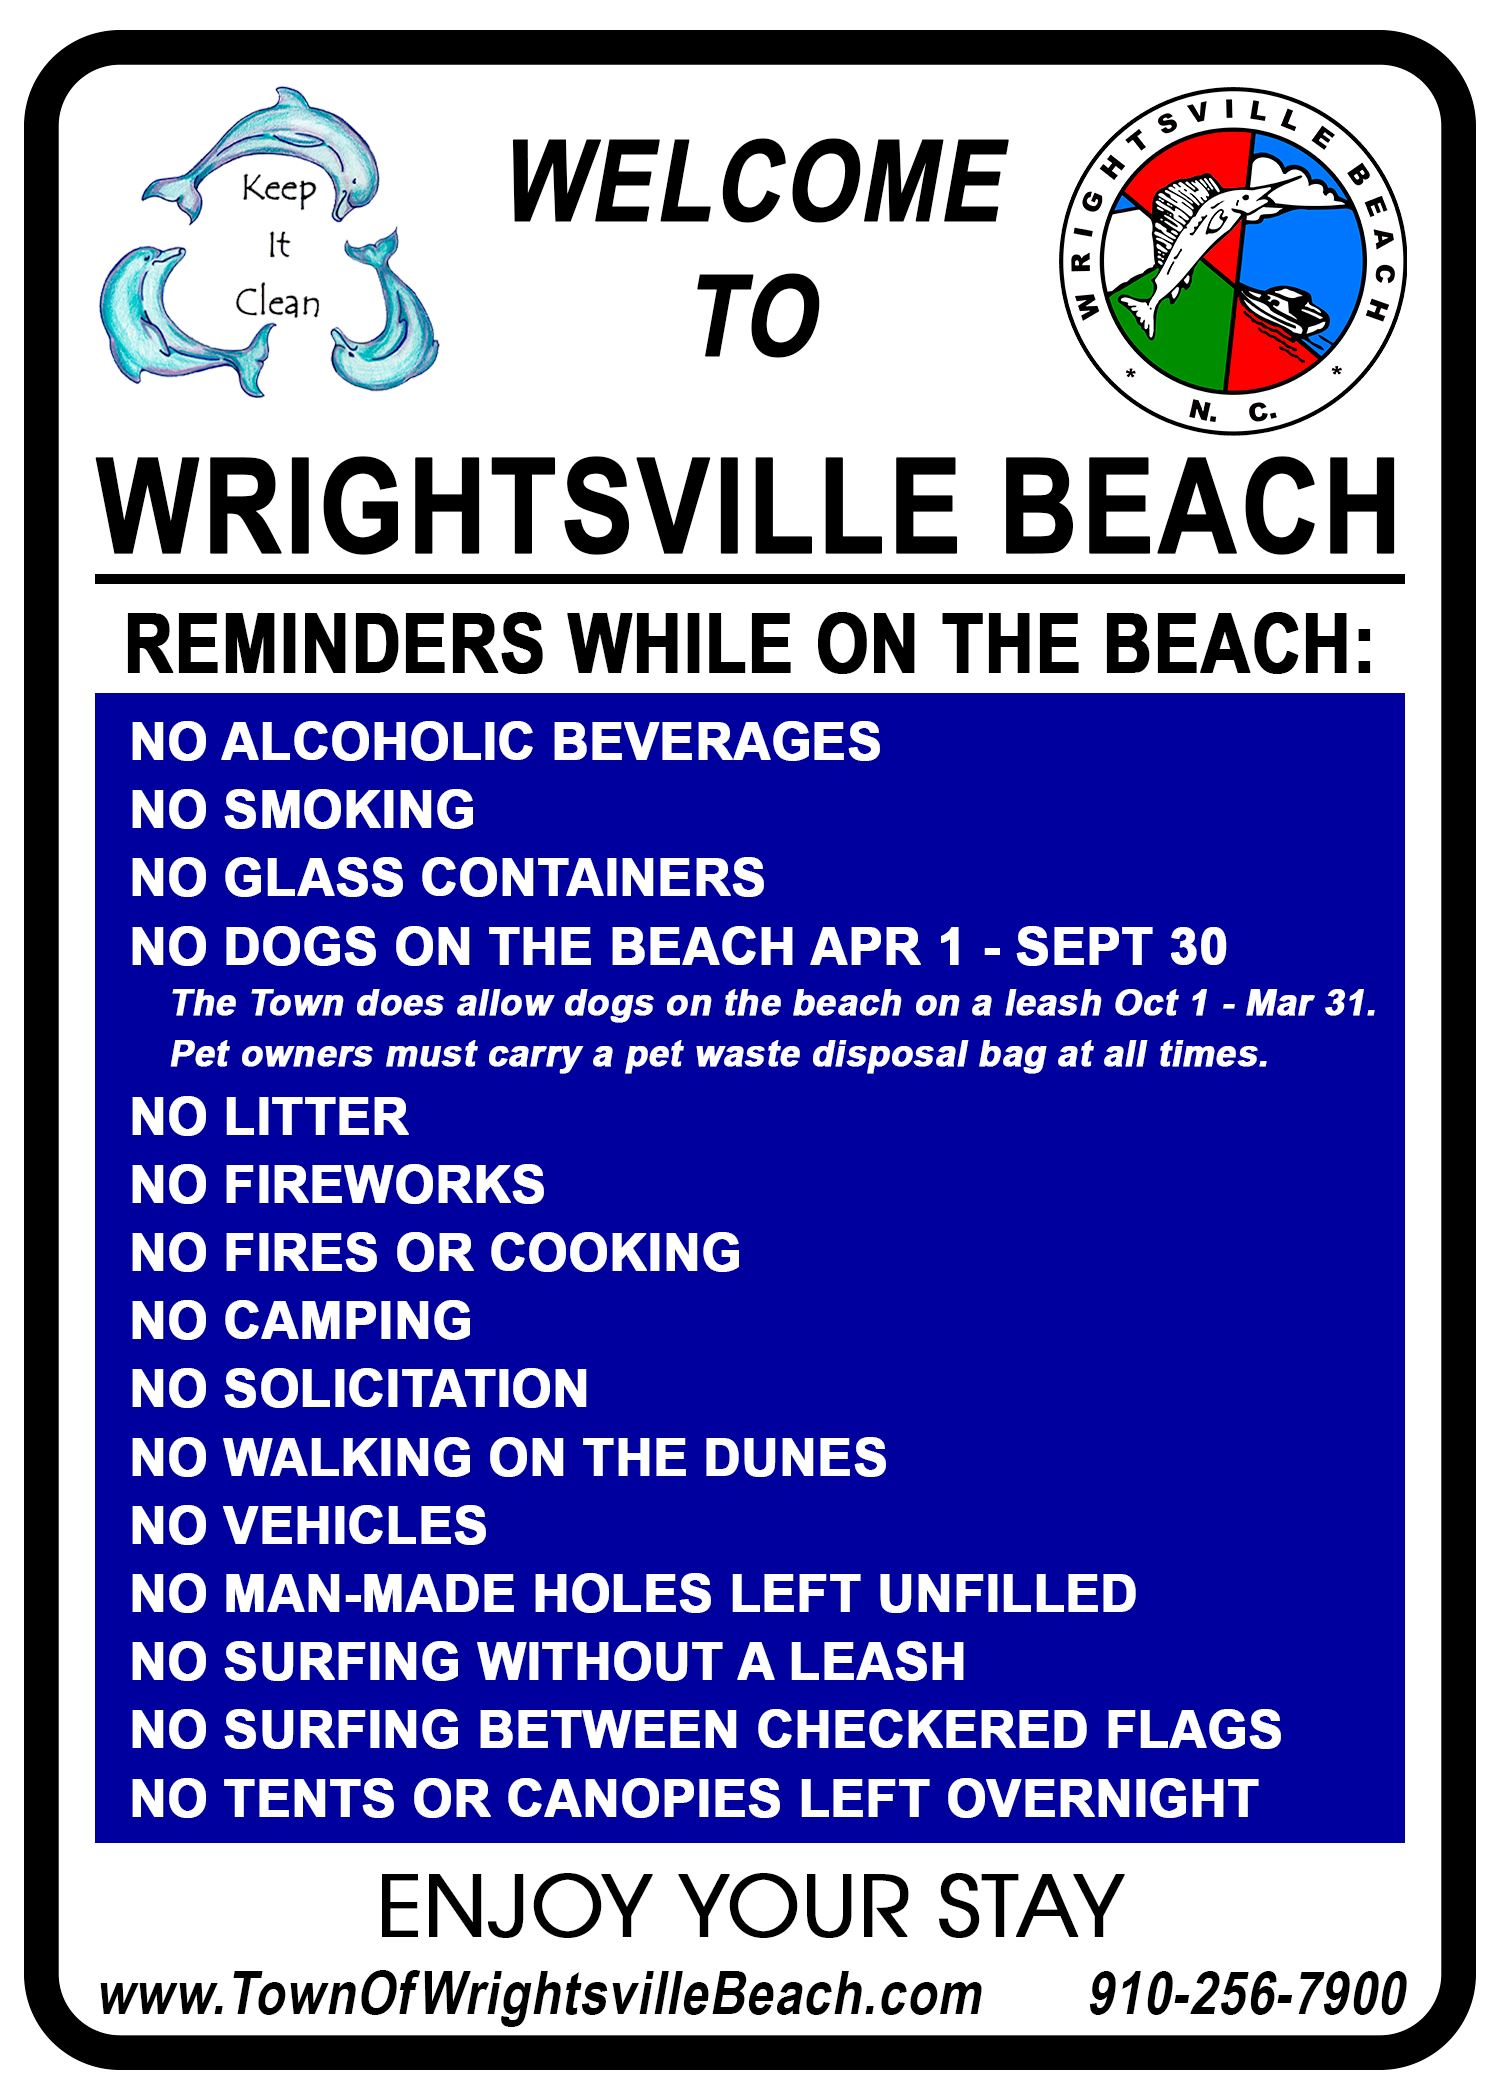 Welcome to WB Beach Sign